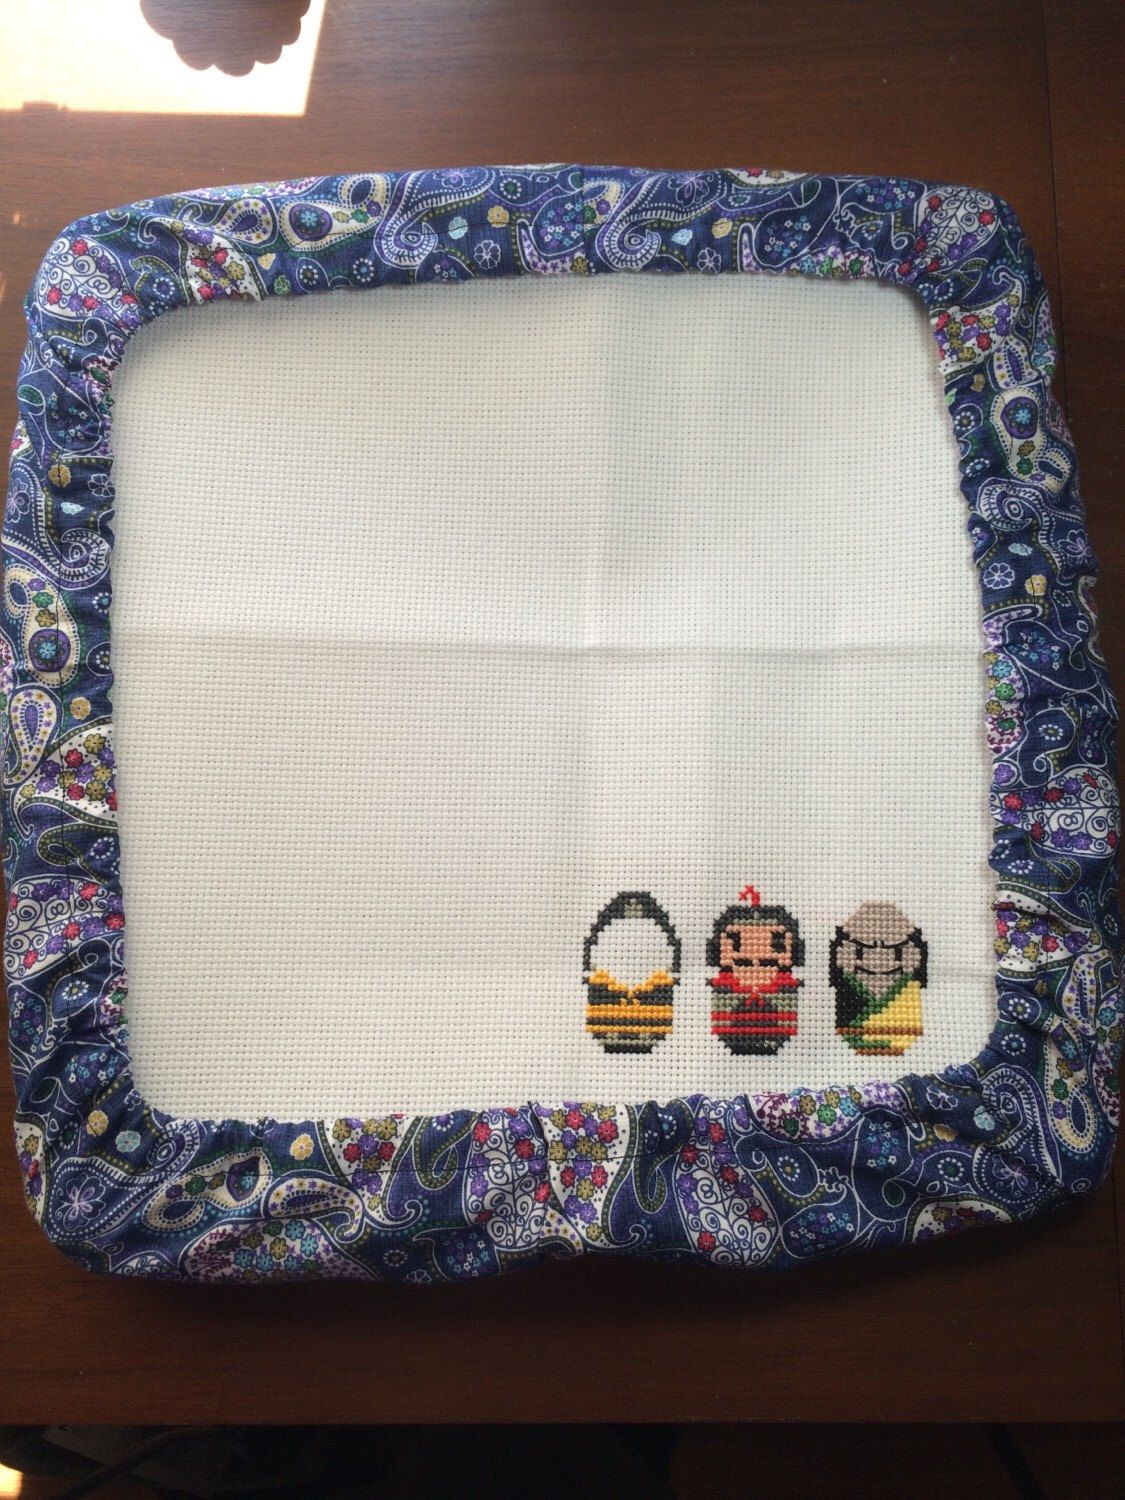 Cross Stitch Grime Guard 8x8 embroidery counted cover qsnap frame ...